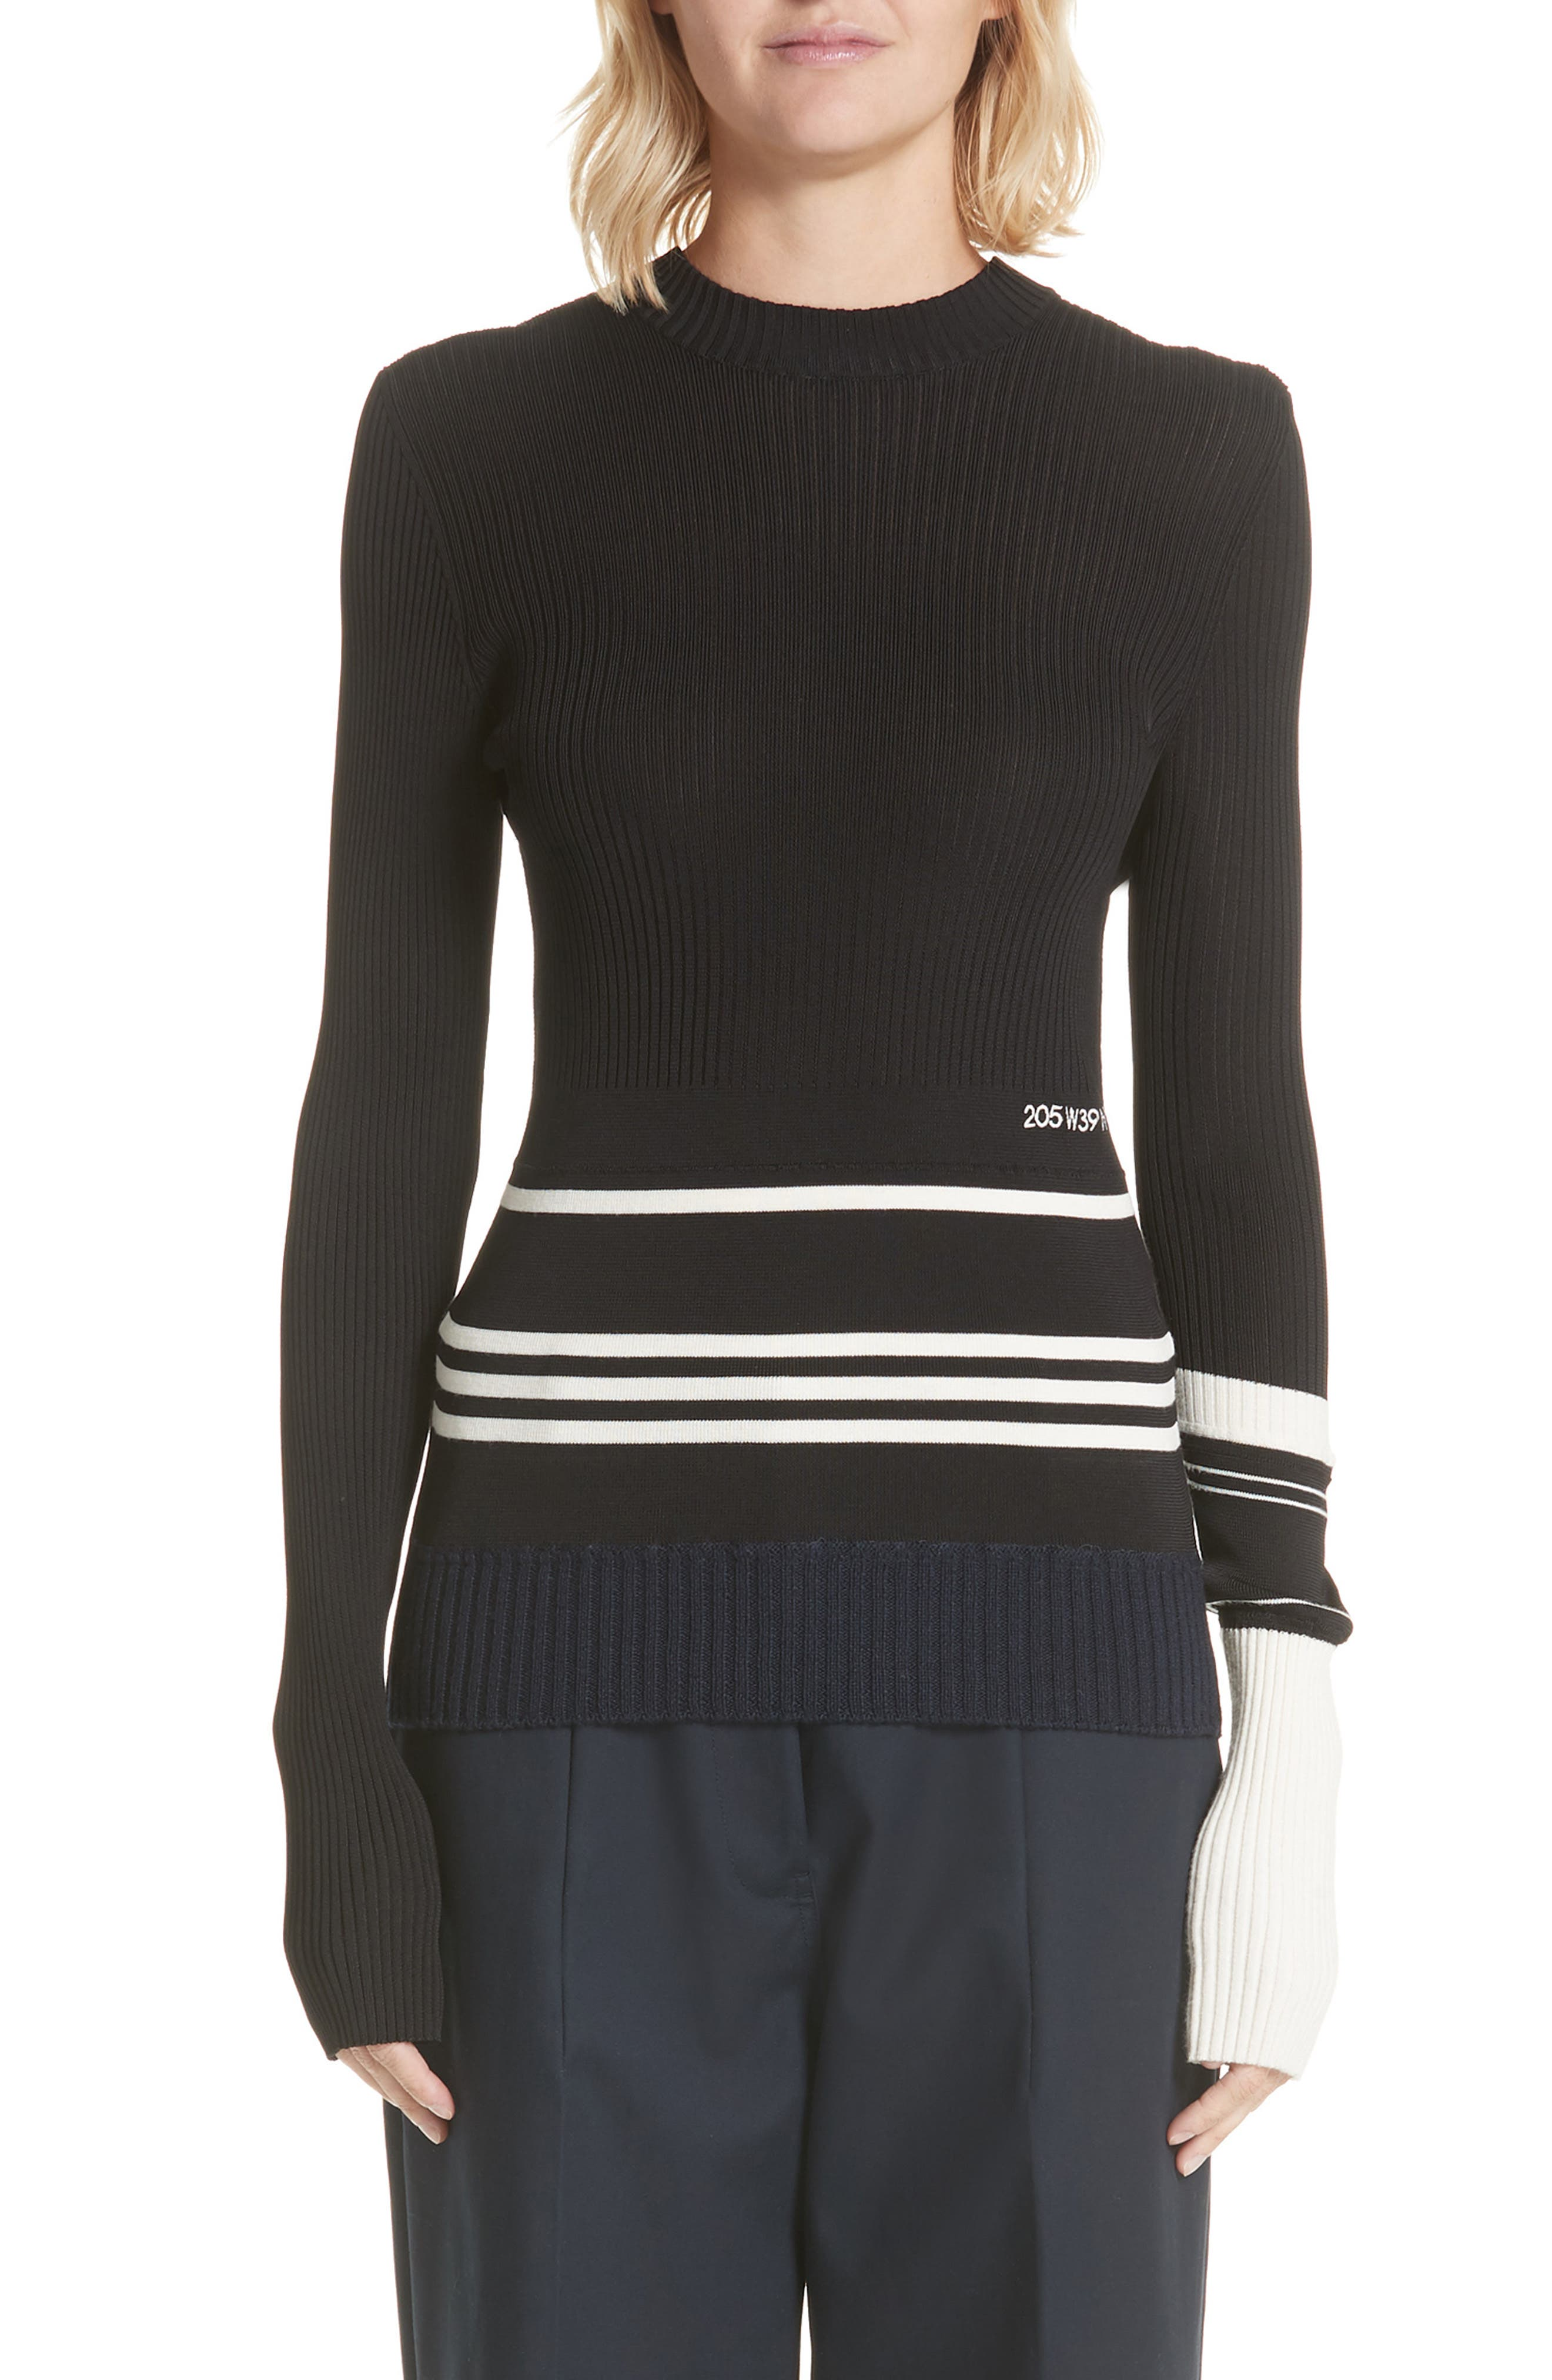 Varsity Stripe Colorblock Sweater,                             Main thumbnail 1, color,                             BLACK IVORY NAVY